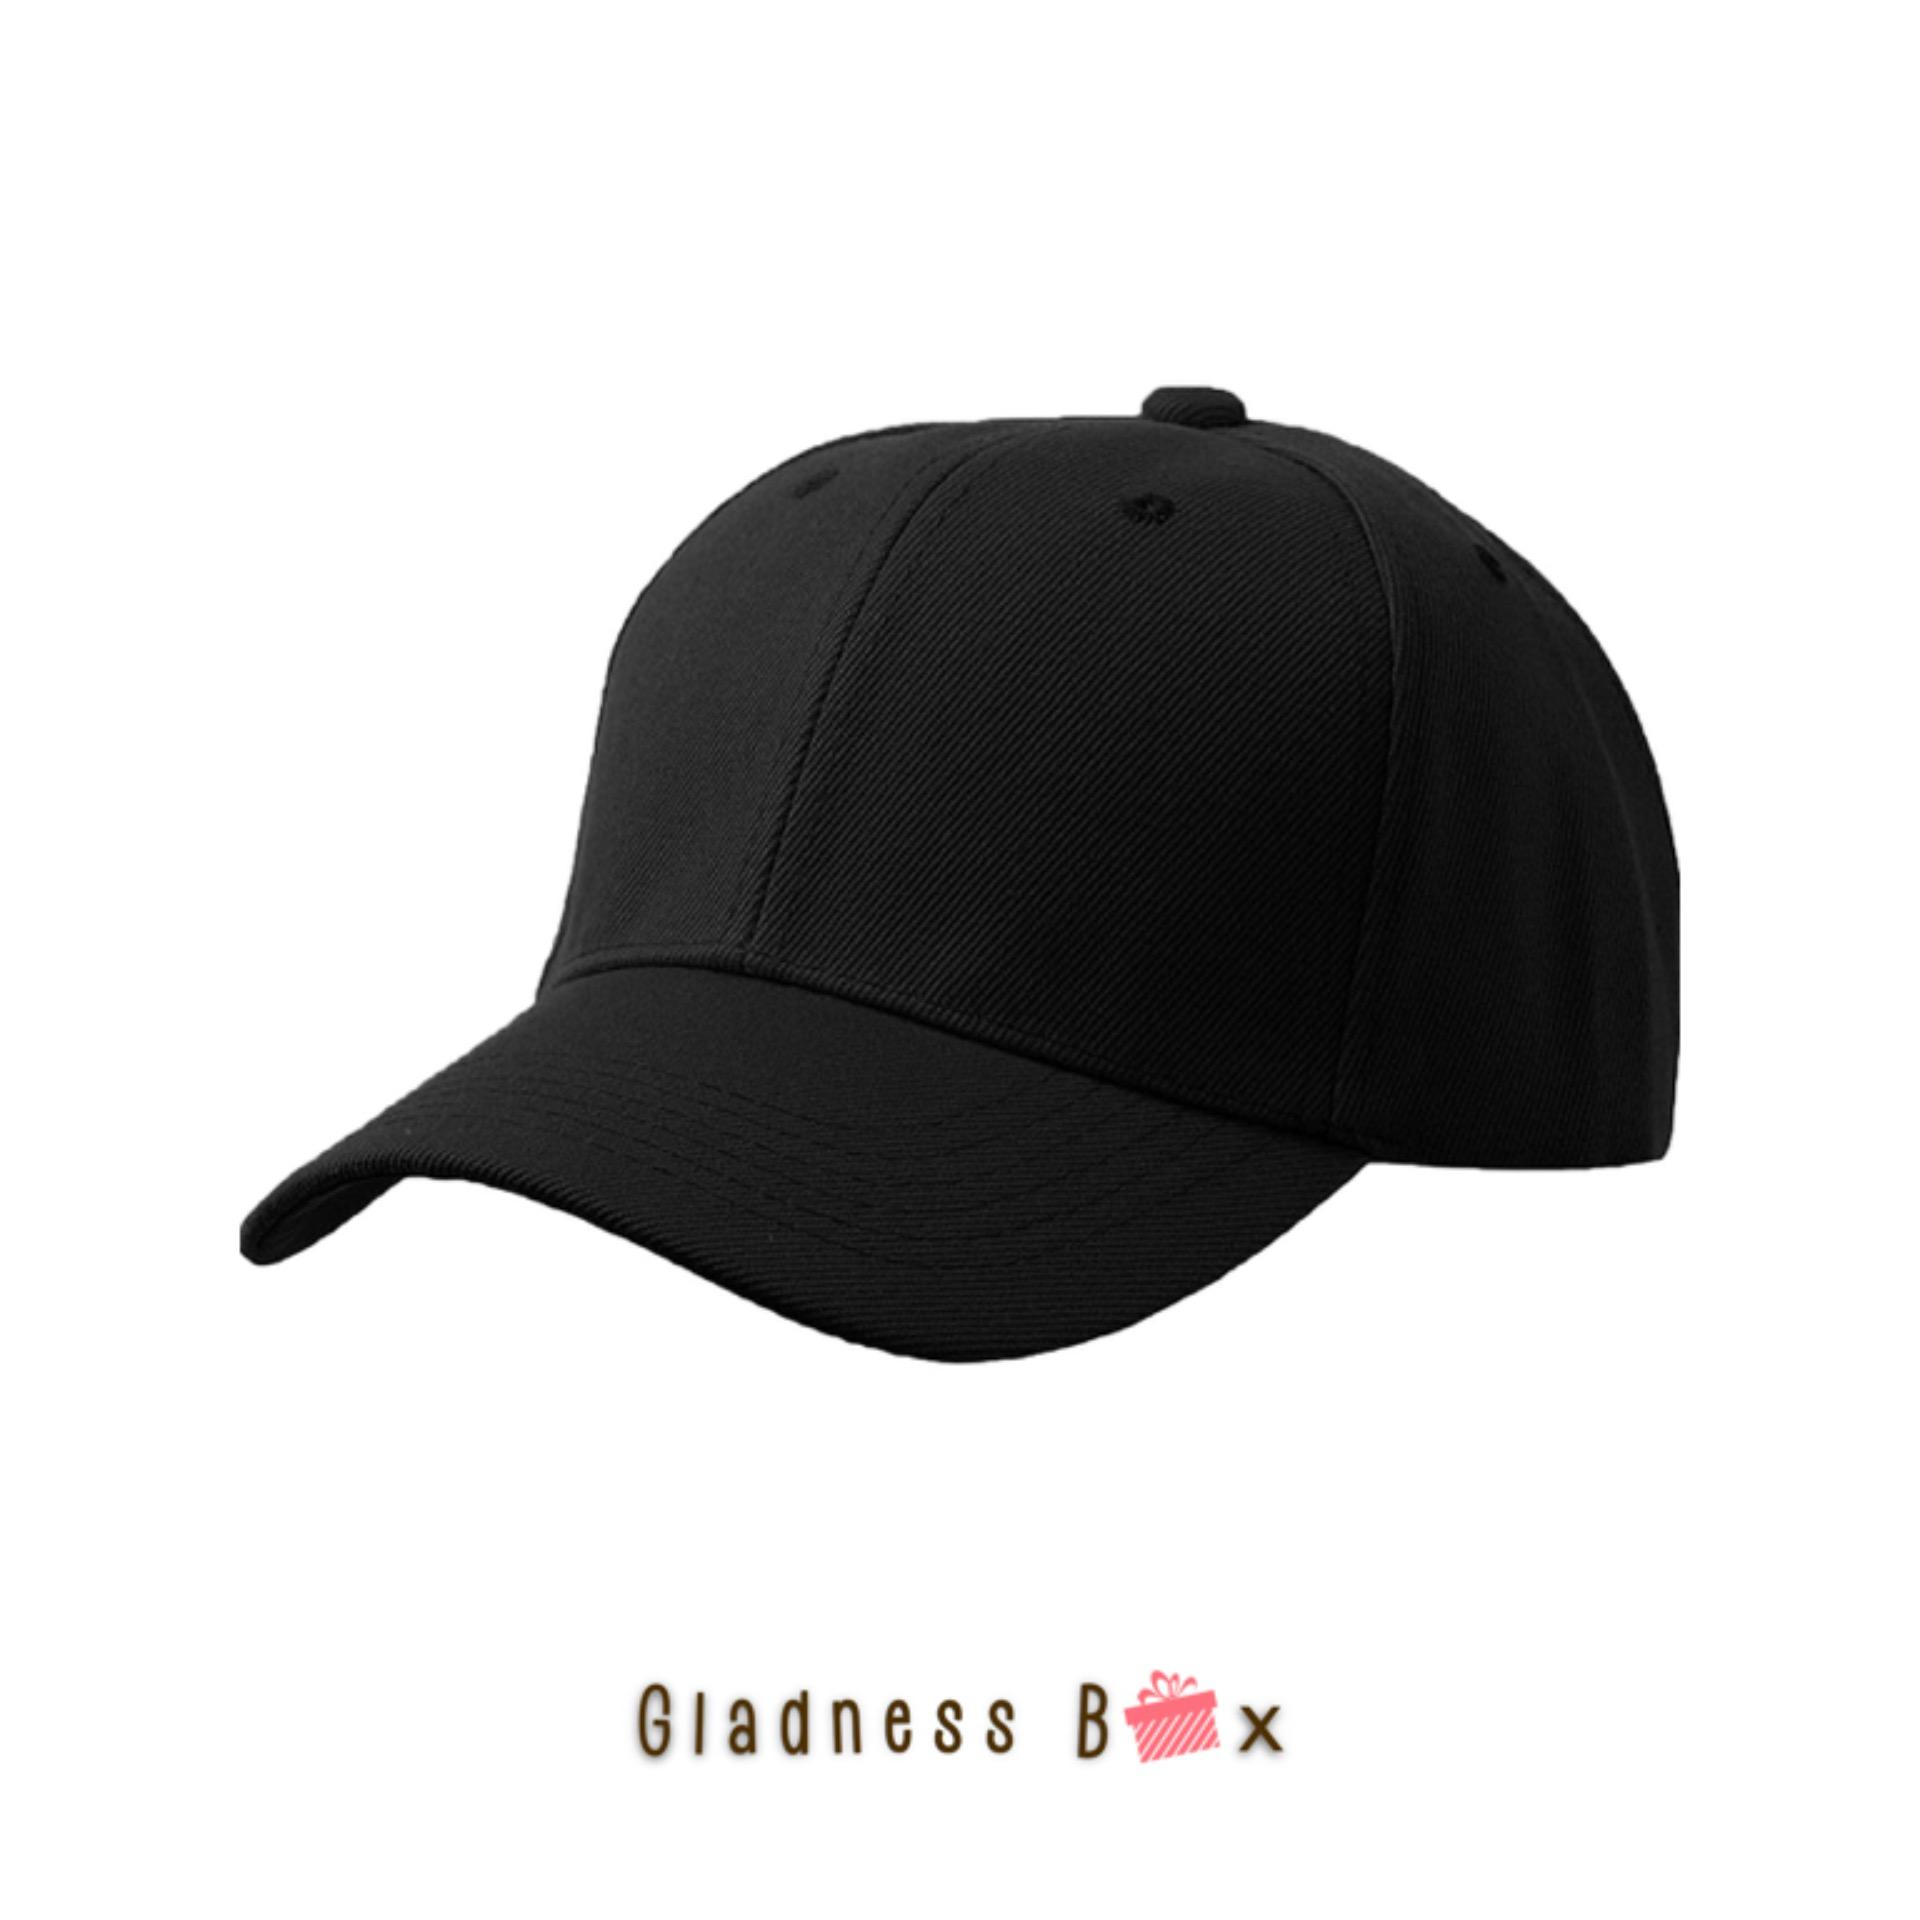 f3a7dedcd4d08 Gladness Box High Quality Plain Baseball Cap for Men Women Unisex